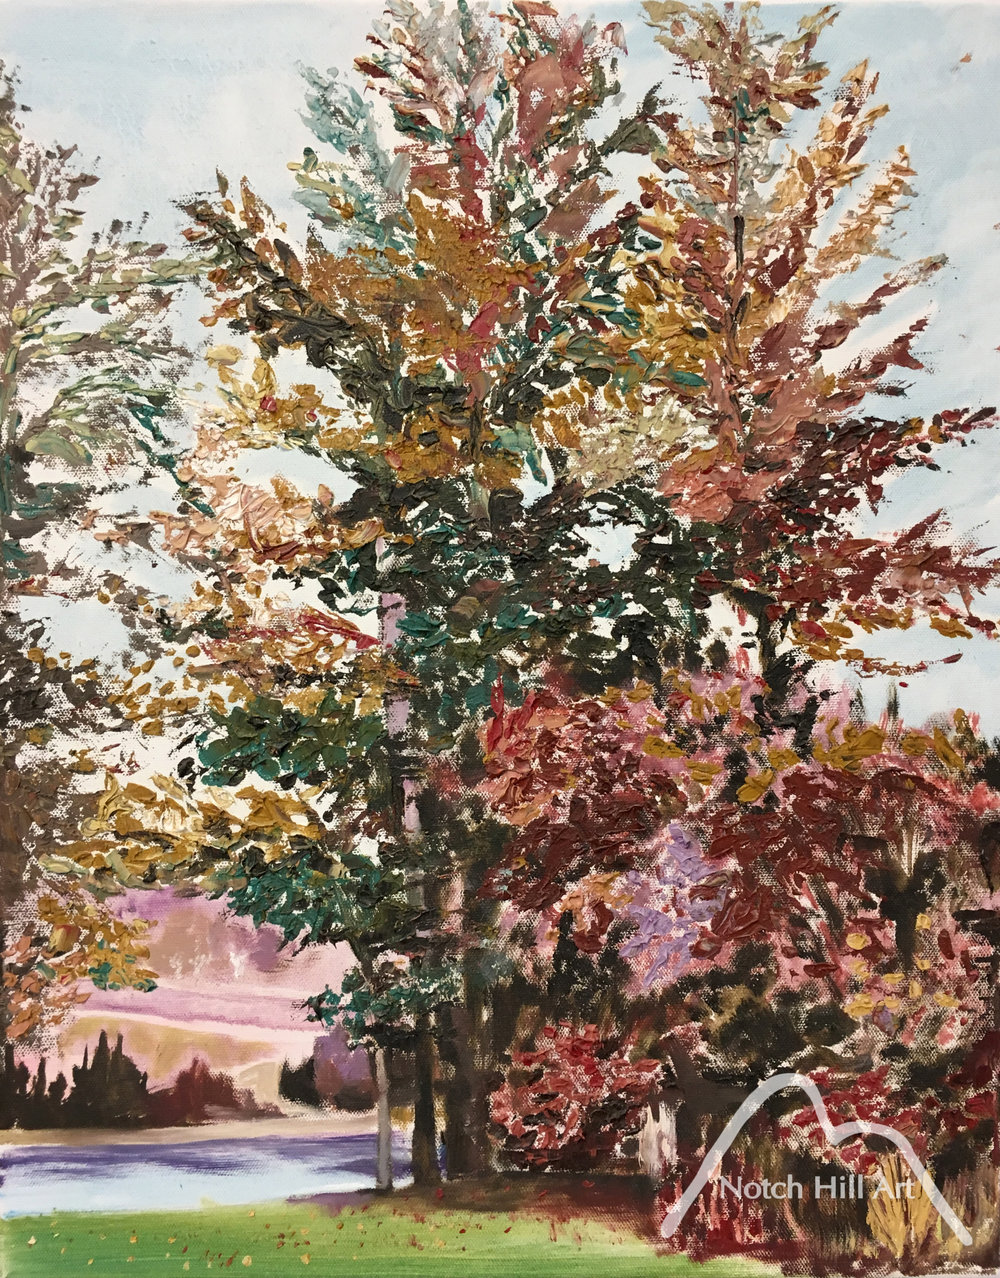 Autumn Trees by the Nechako